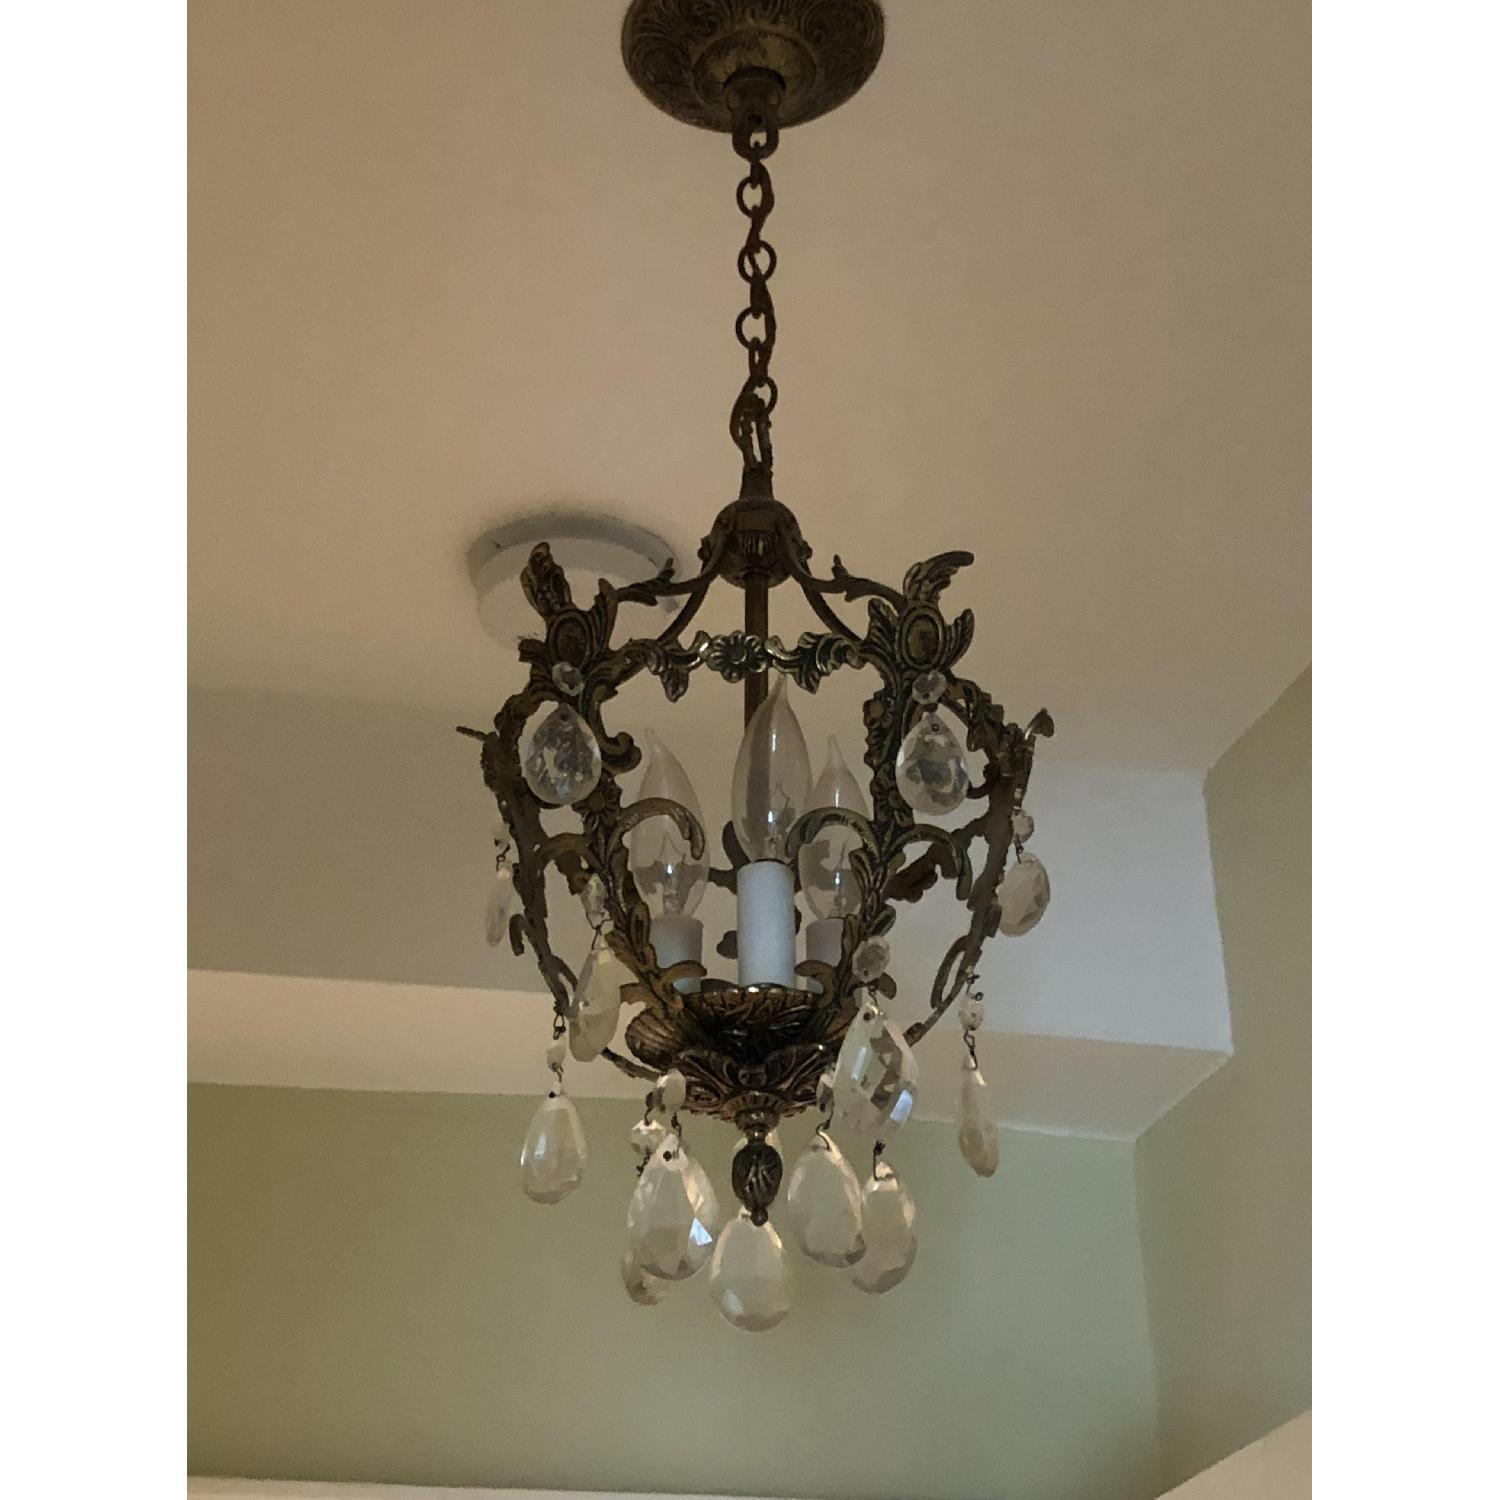 3-Light Candle Style Brass Light Fixture w/ Crystal Accents-0